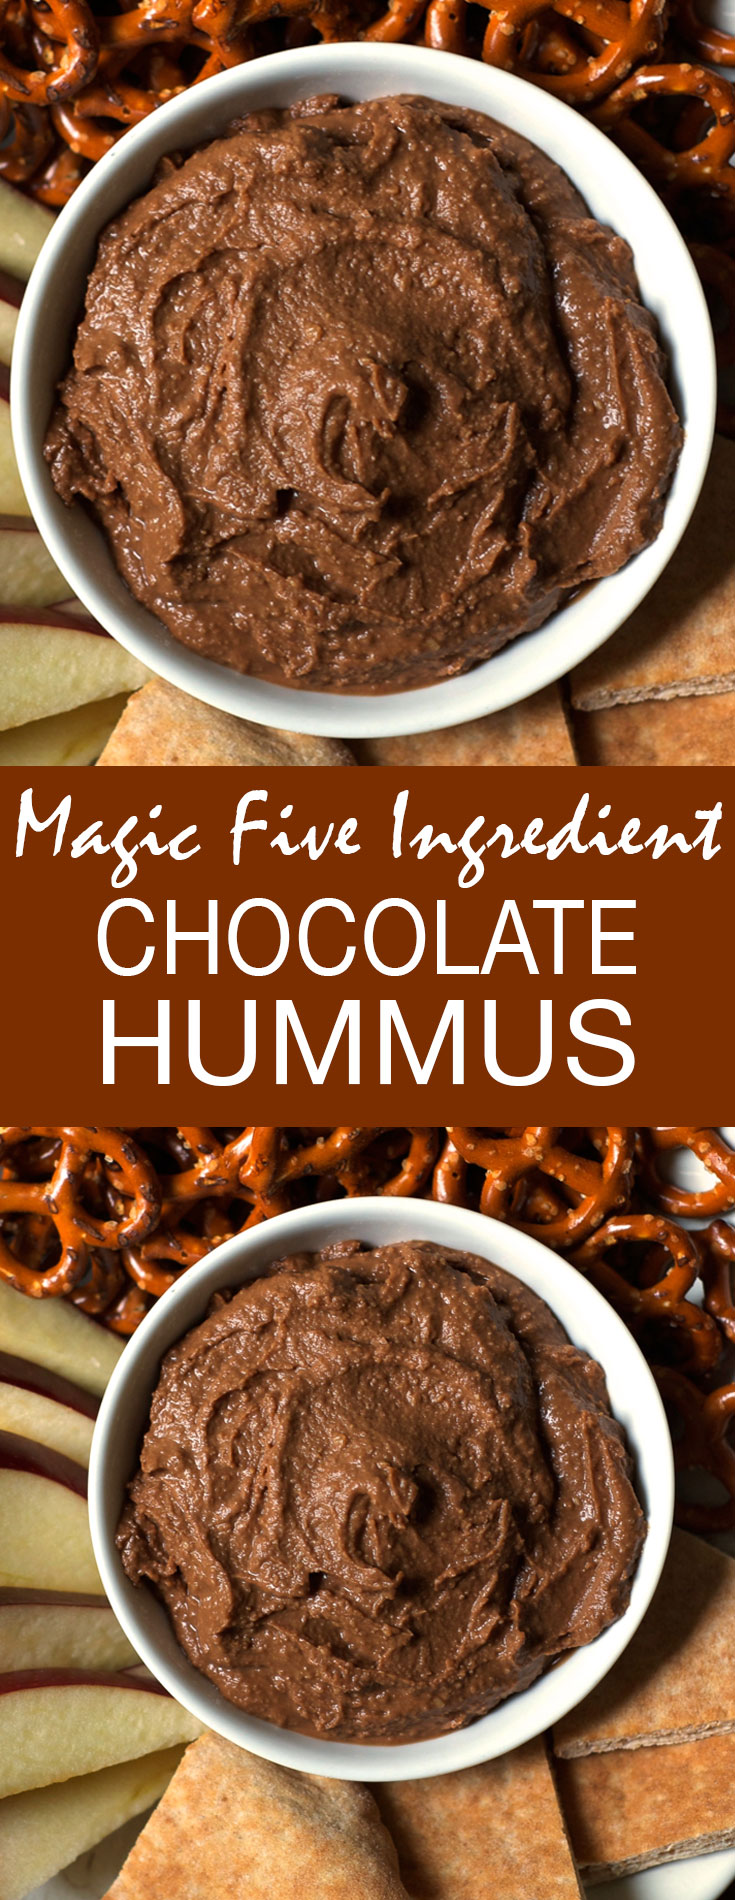 This Magic Five Ingredient Chocolate Hummus is Gluten-Free, Vegan and so delicious. It makes the perfect party appetizer or after-school snack.